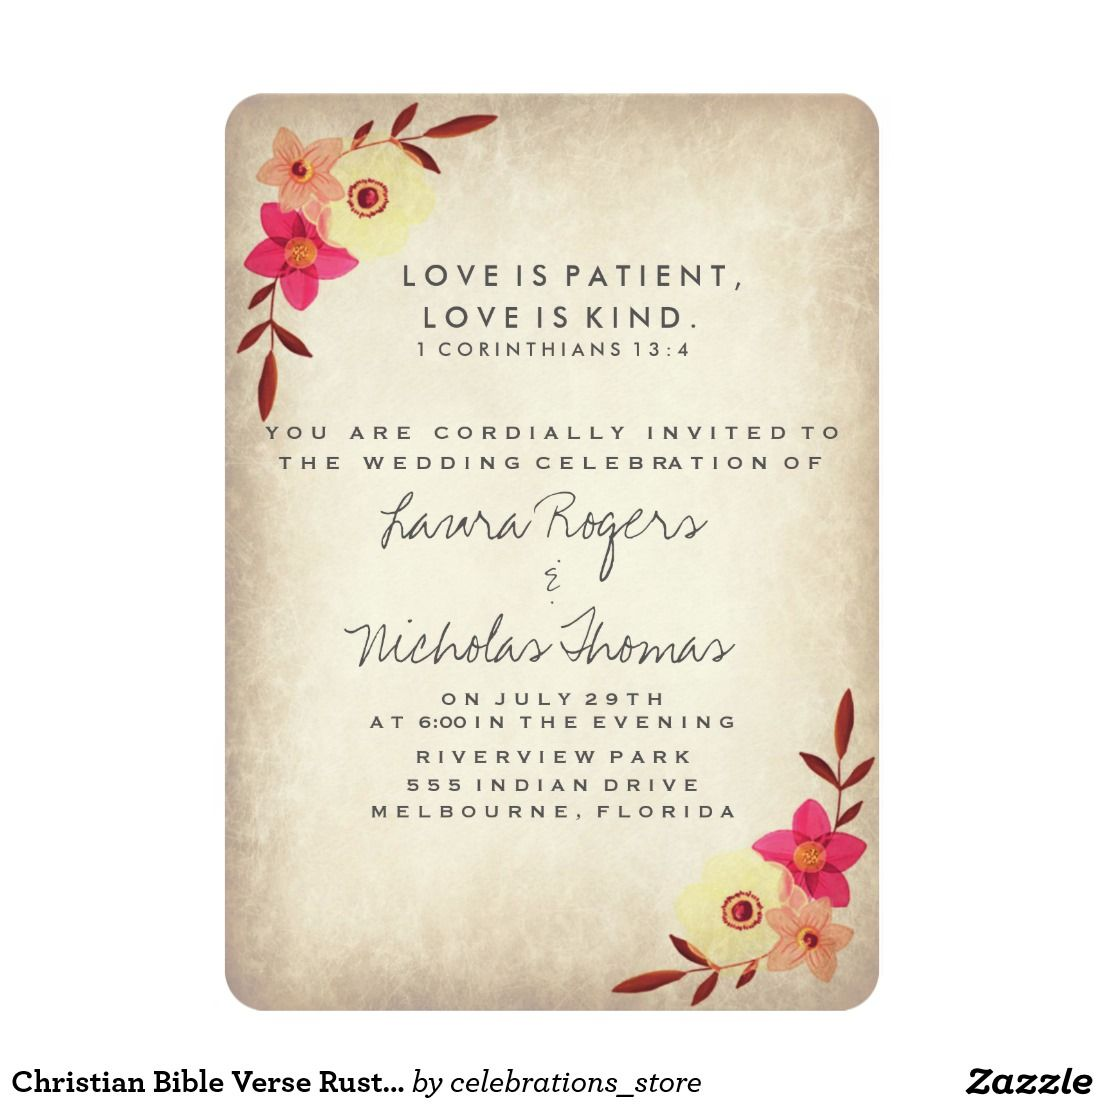 Christian Bible Verse Rustic Country Floral Invitation | Wedding ...